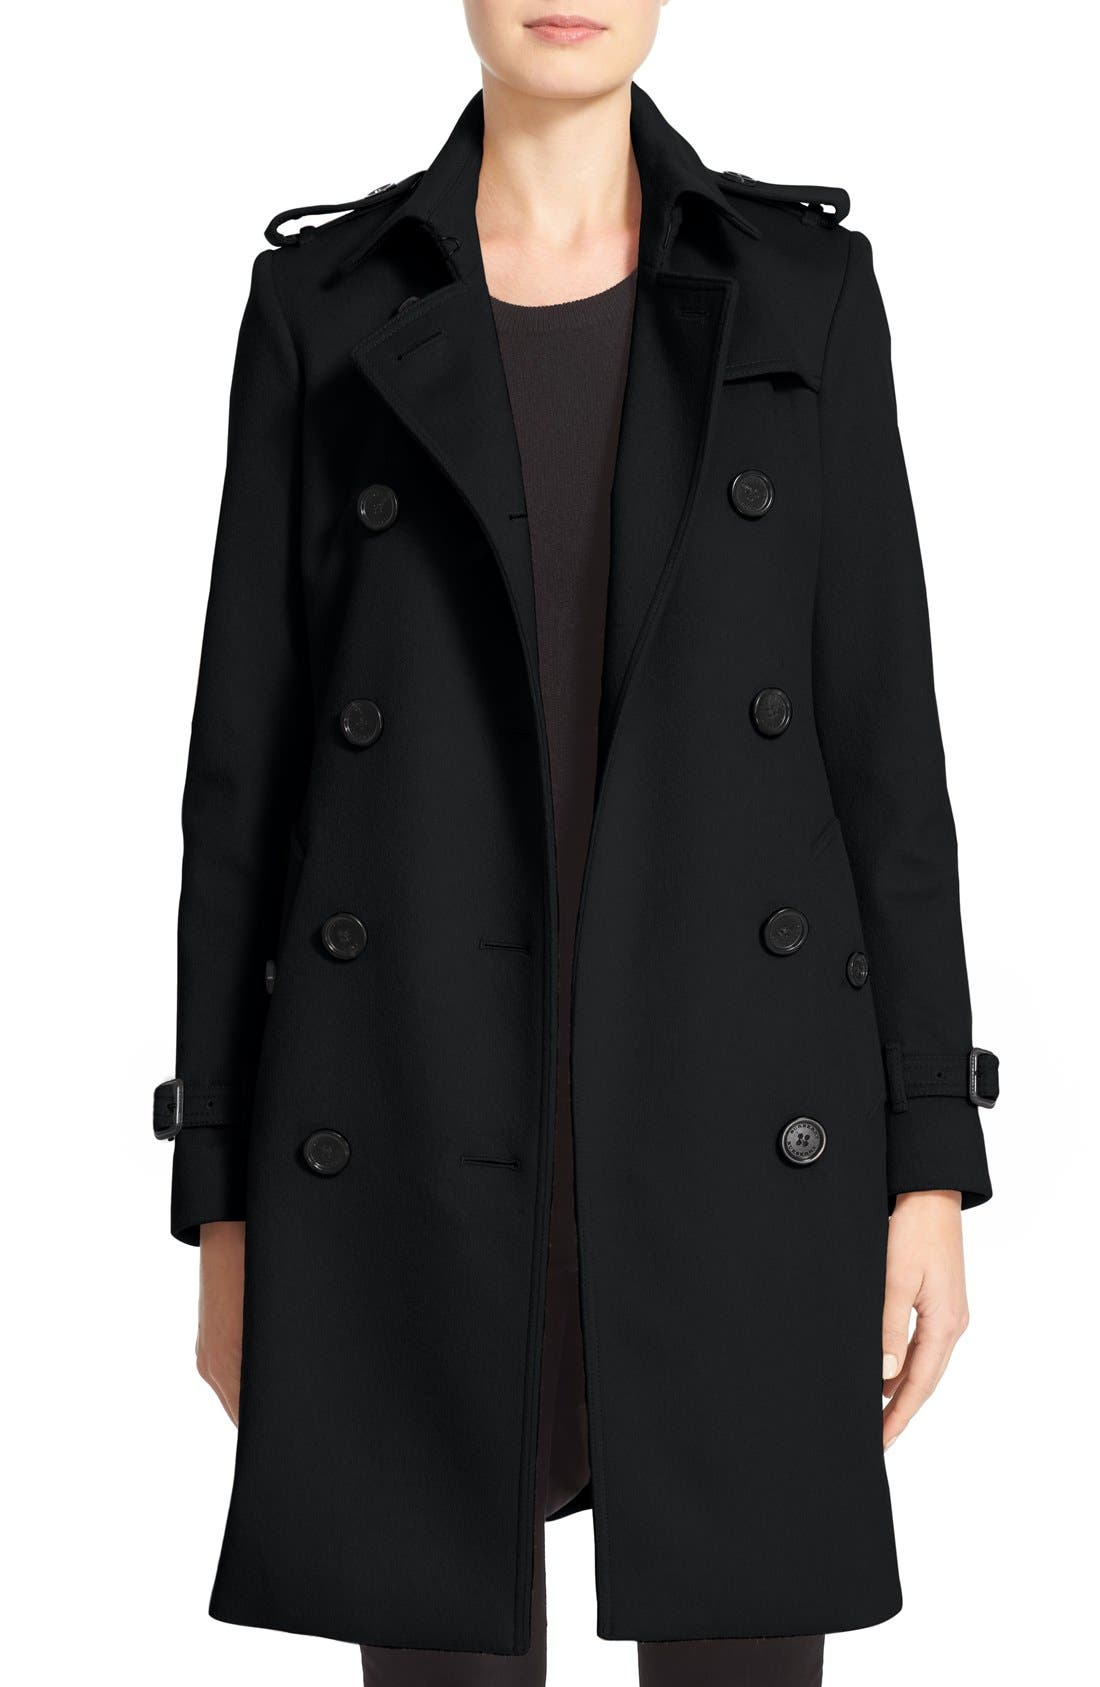 Kensington Double Breasted Wool & Cashmere Trench Coat,                             Main thumbnail 1, color,                             Black